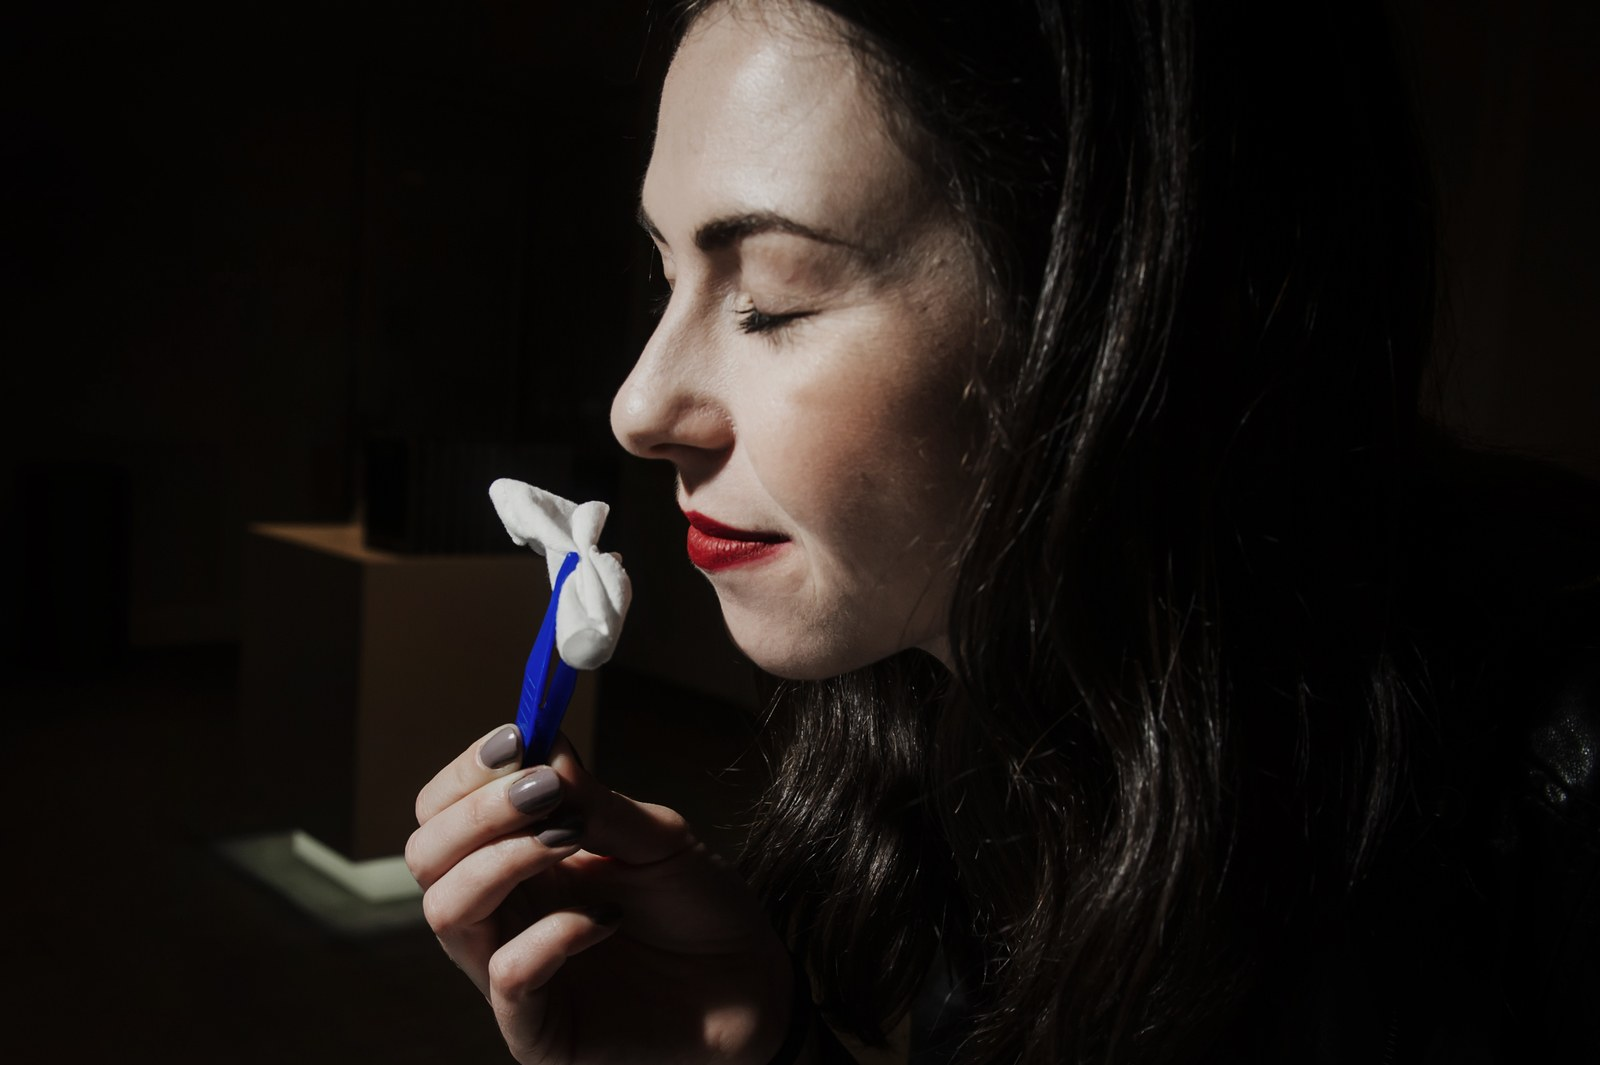 a woman sniffing an object